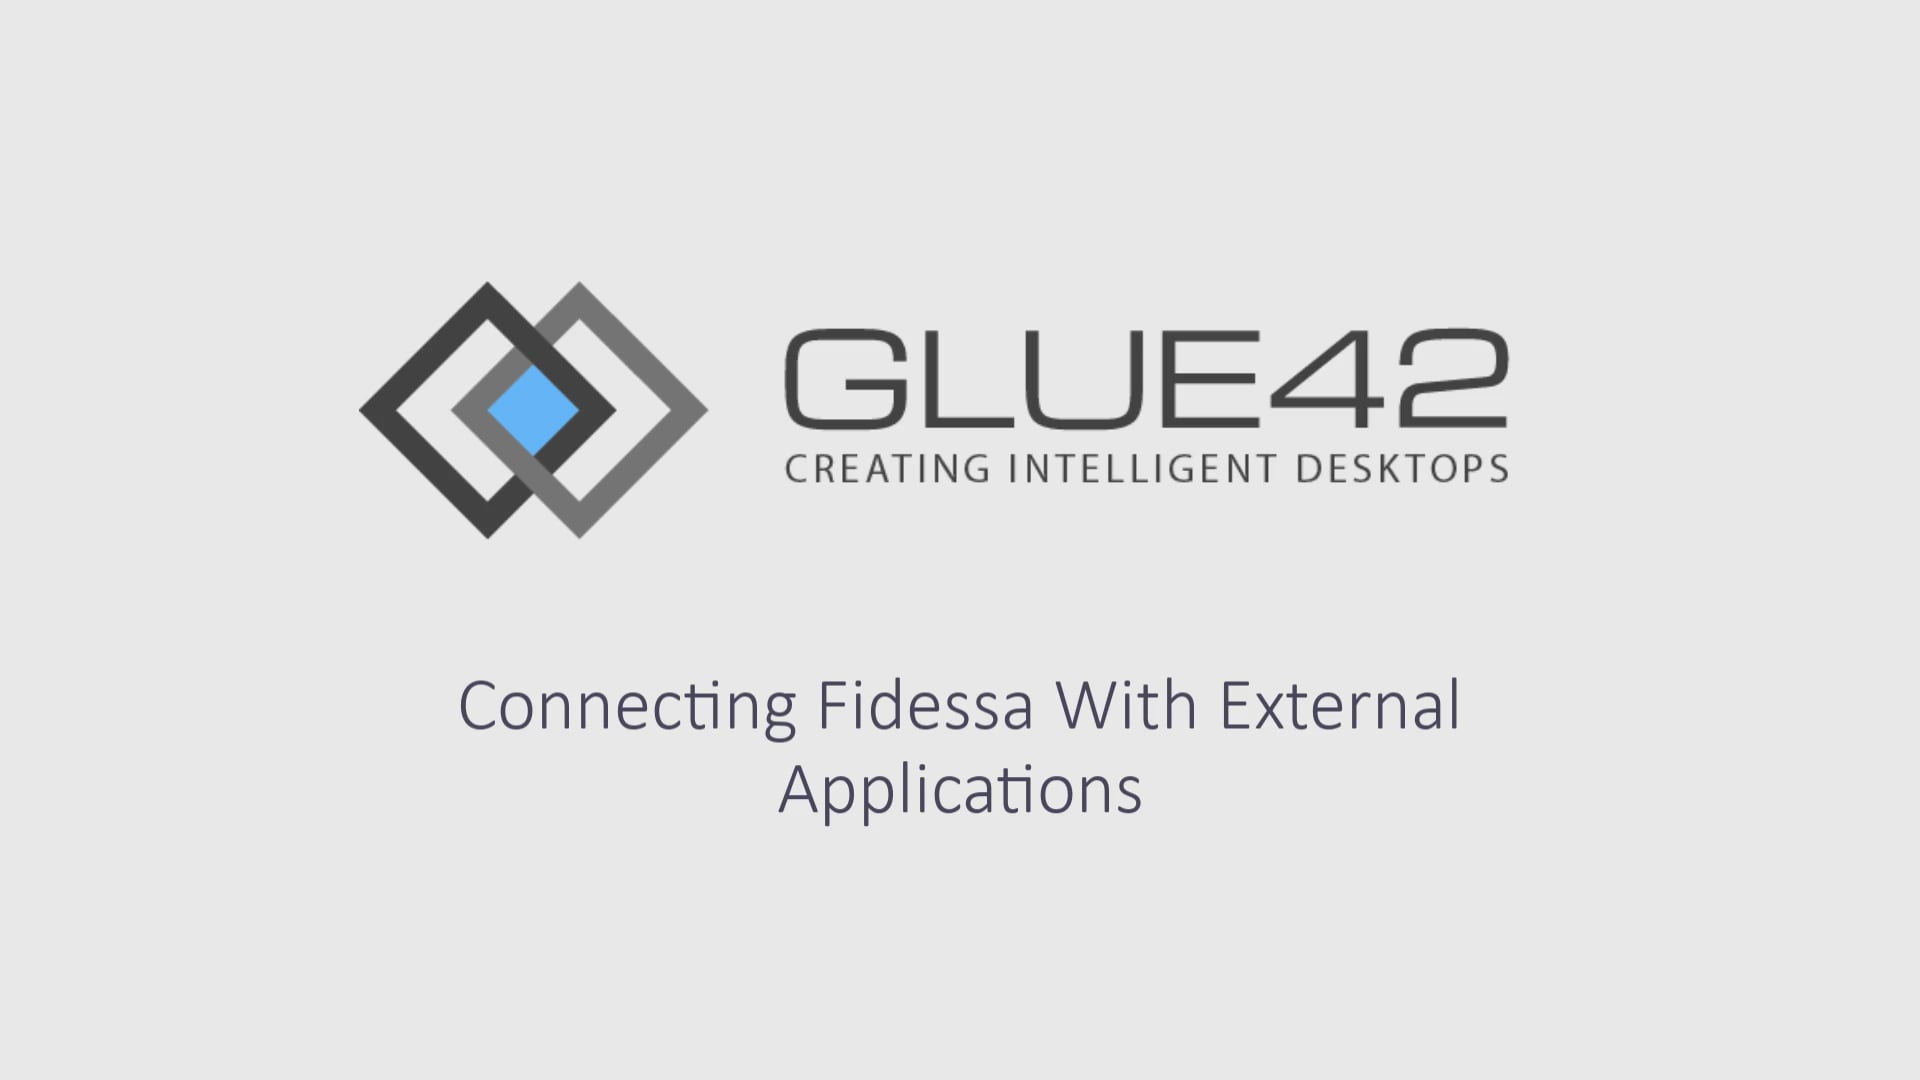 video-Maximize-Your-Fidessa-Investment-with-Glue42